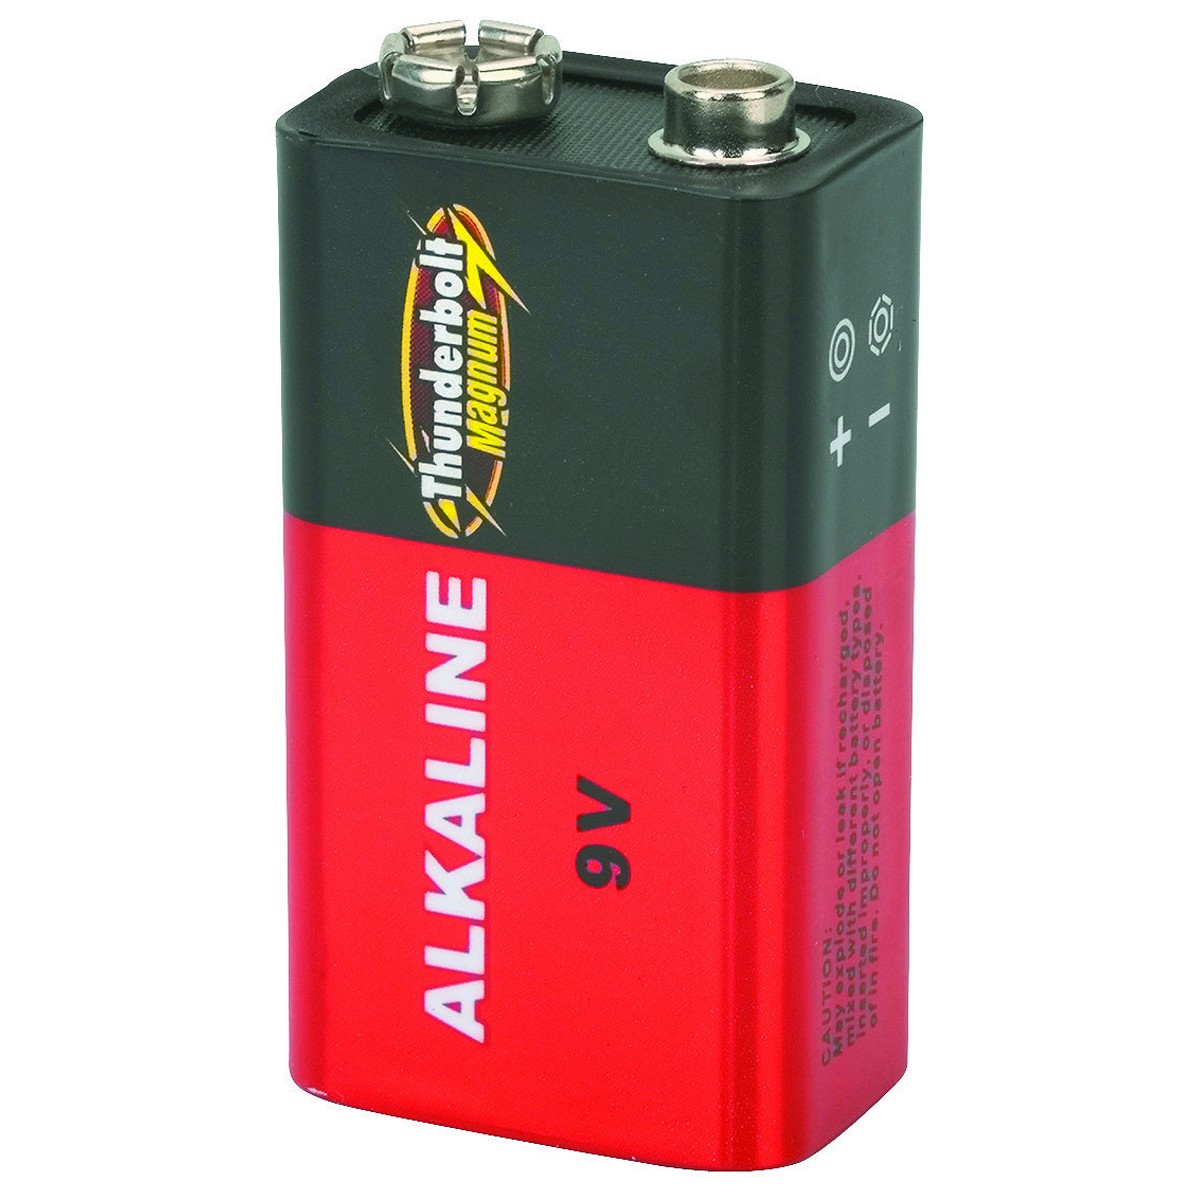 learn more about most dependable alkaline batteries ups battery center. Black Bedroom Furniture Sets. Home Design Ideas